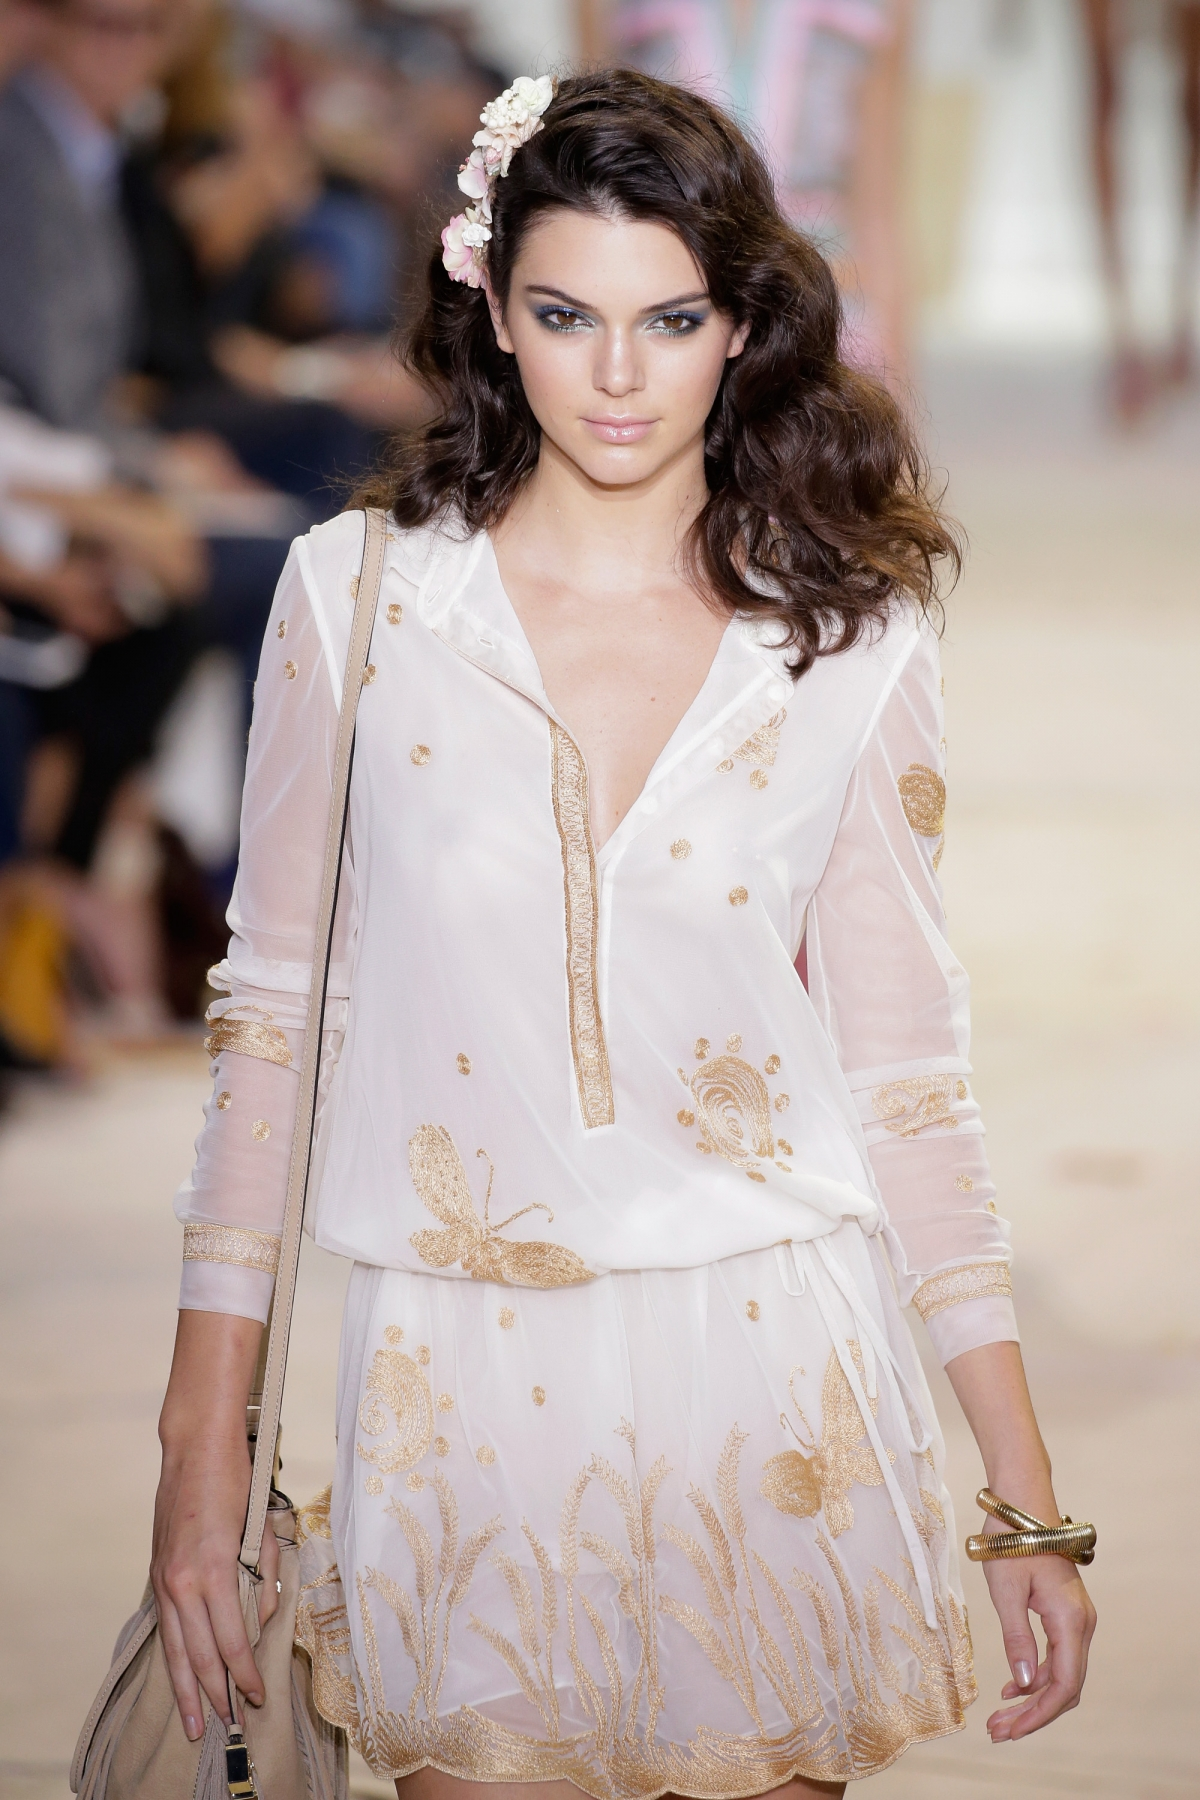 New York Fashion Week 2015: Kendall Jenner leads the ...